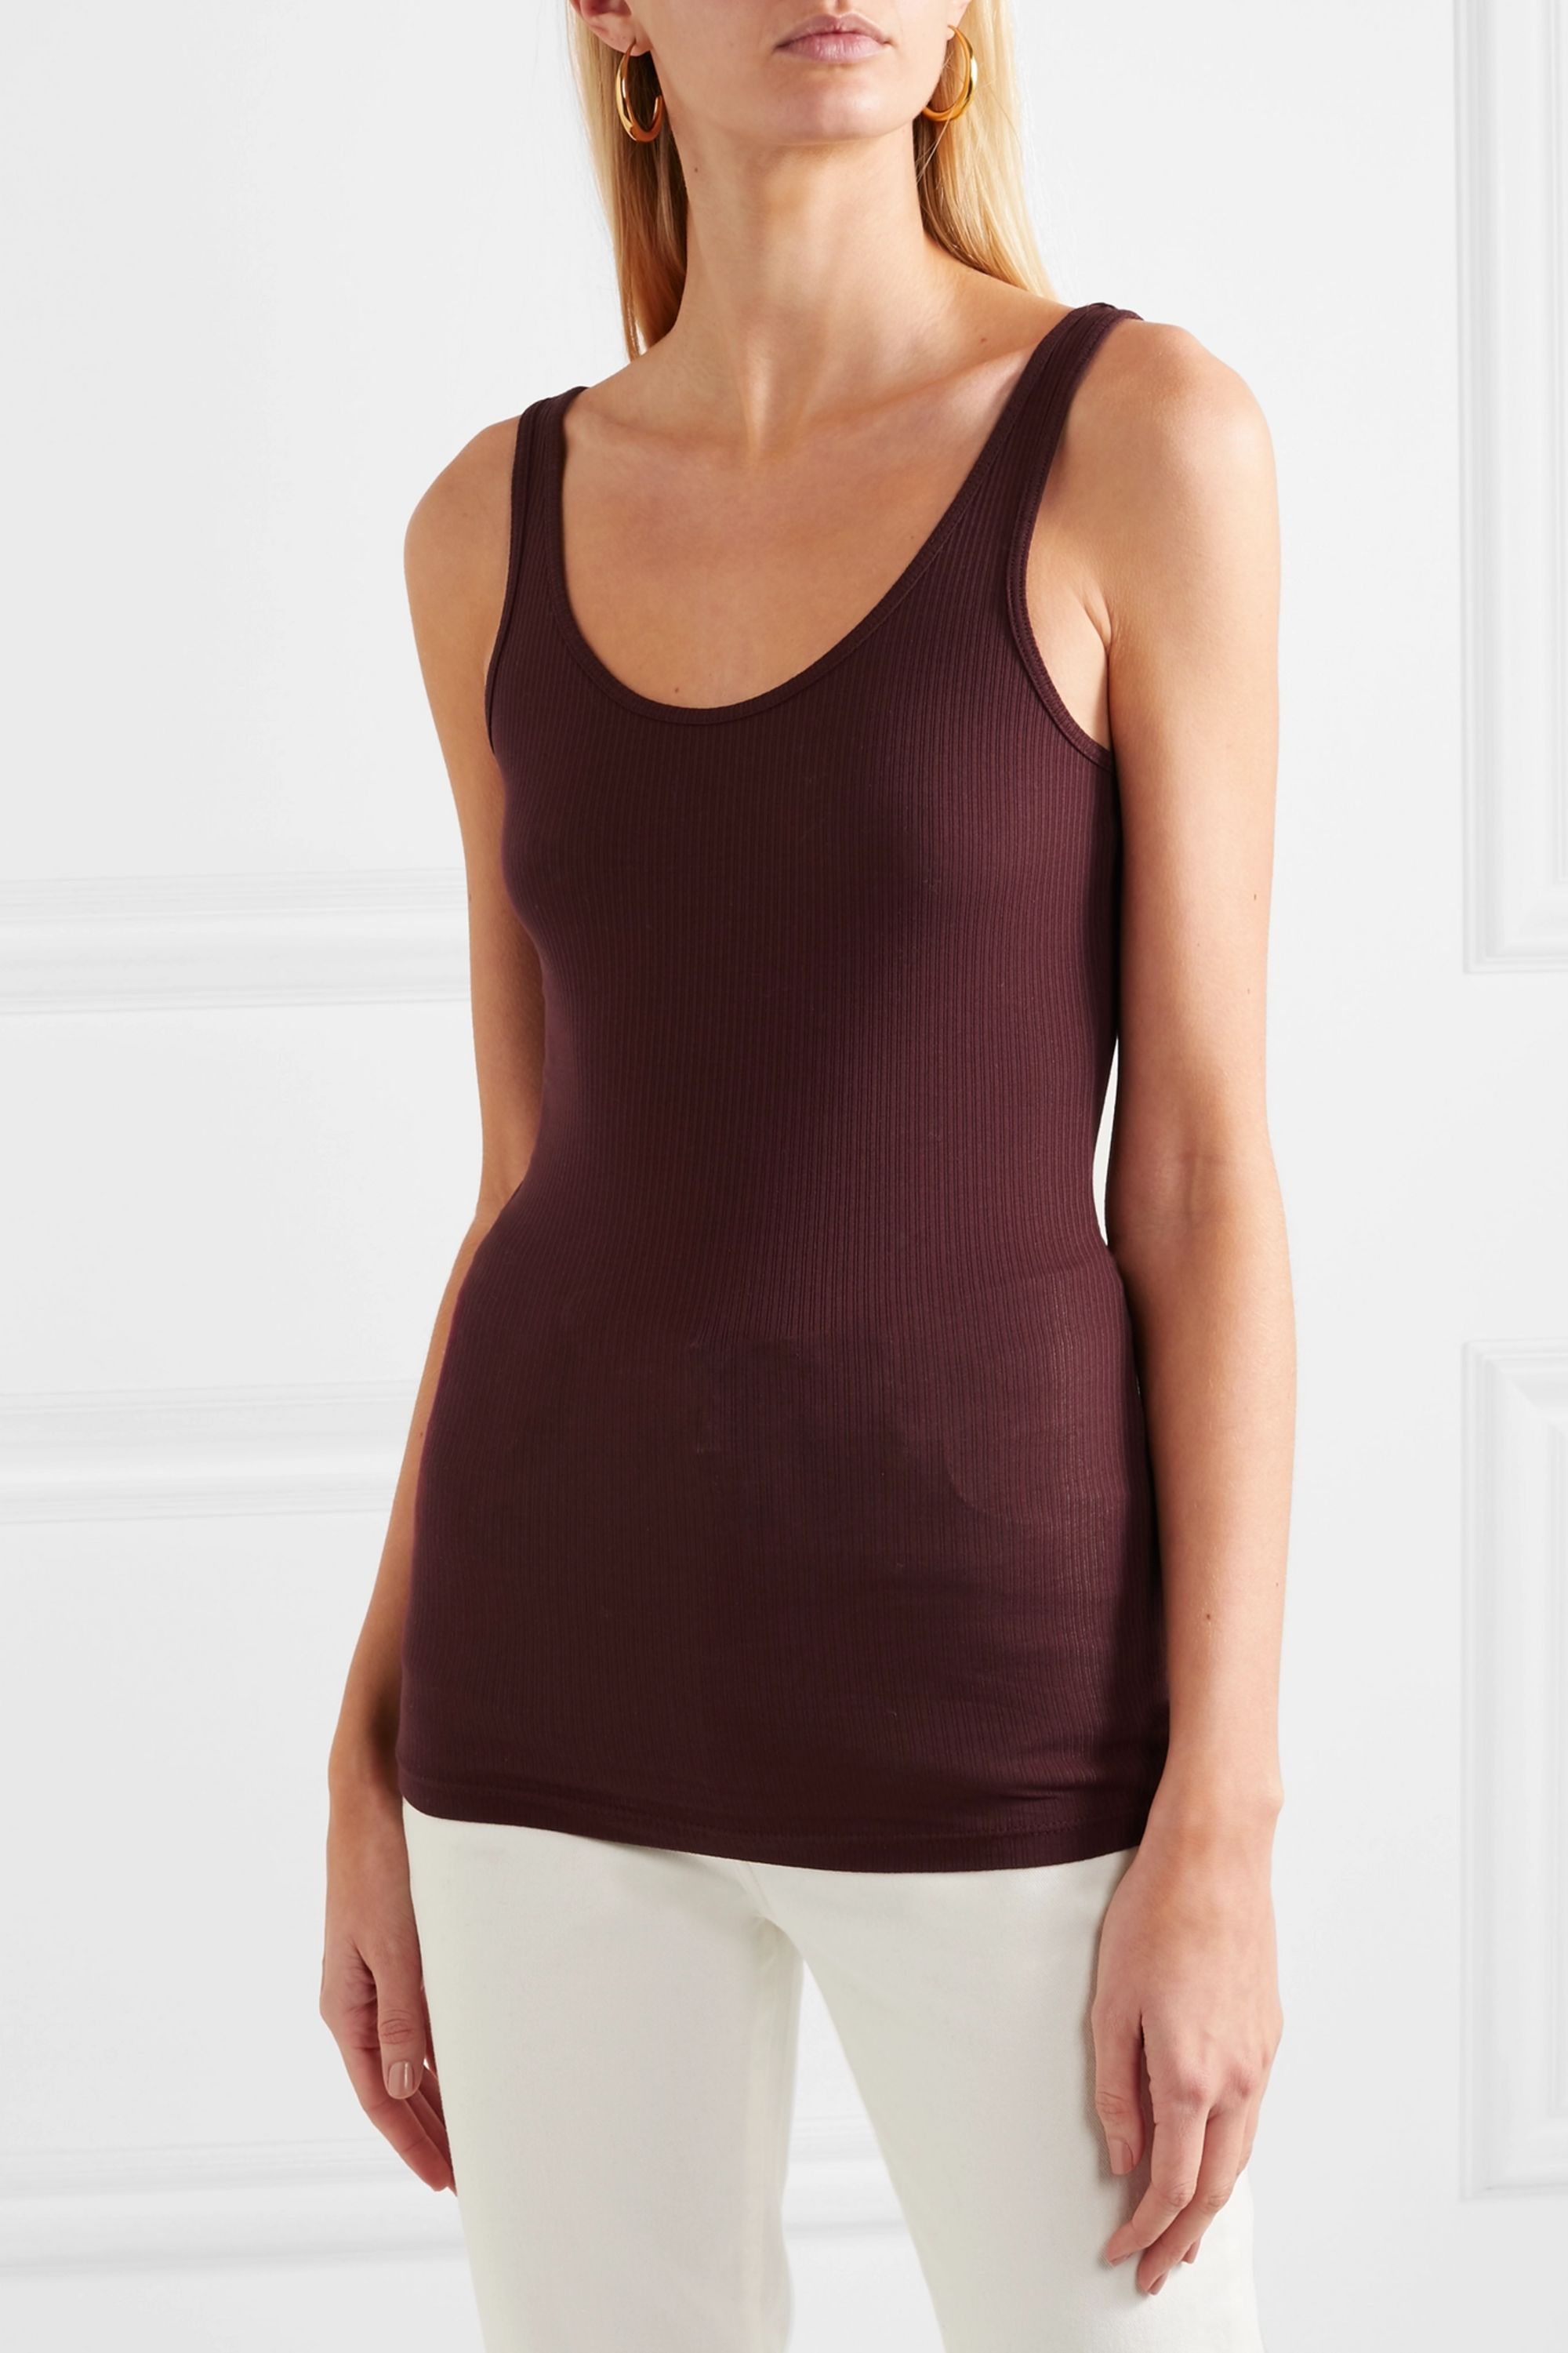 James Perse The Daily ribbed stretch-Supima cotton jersey tank